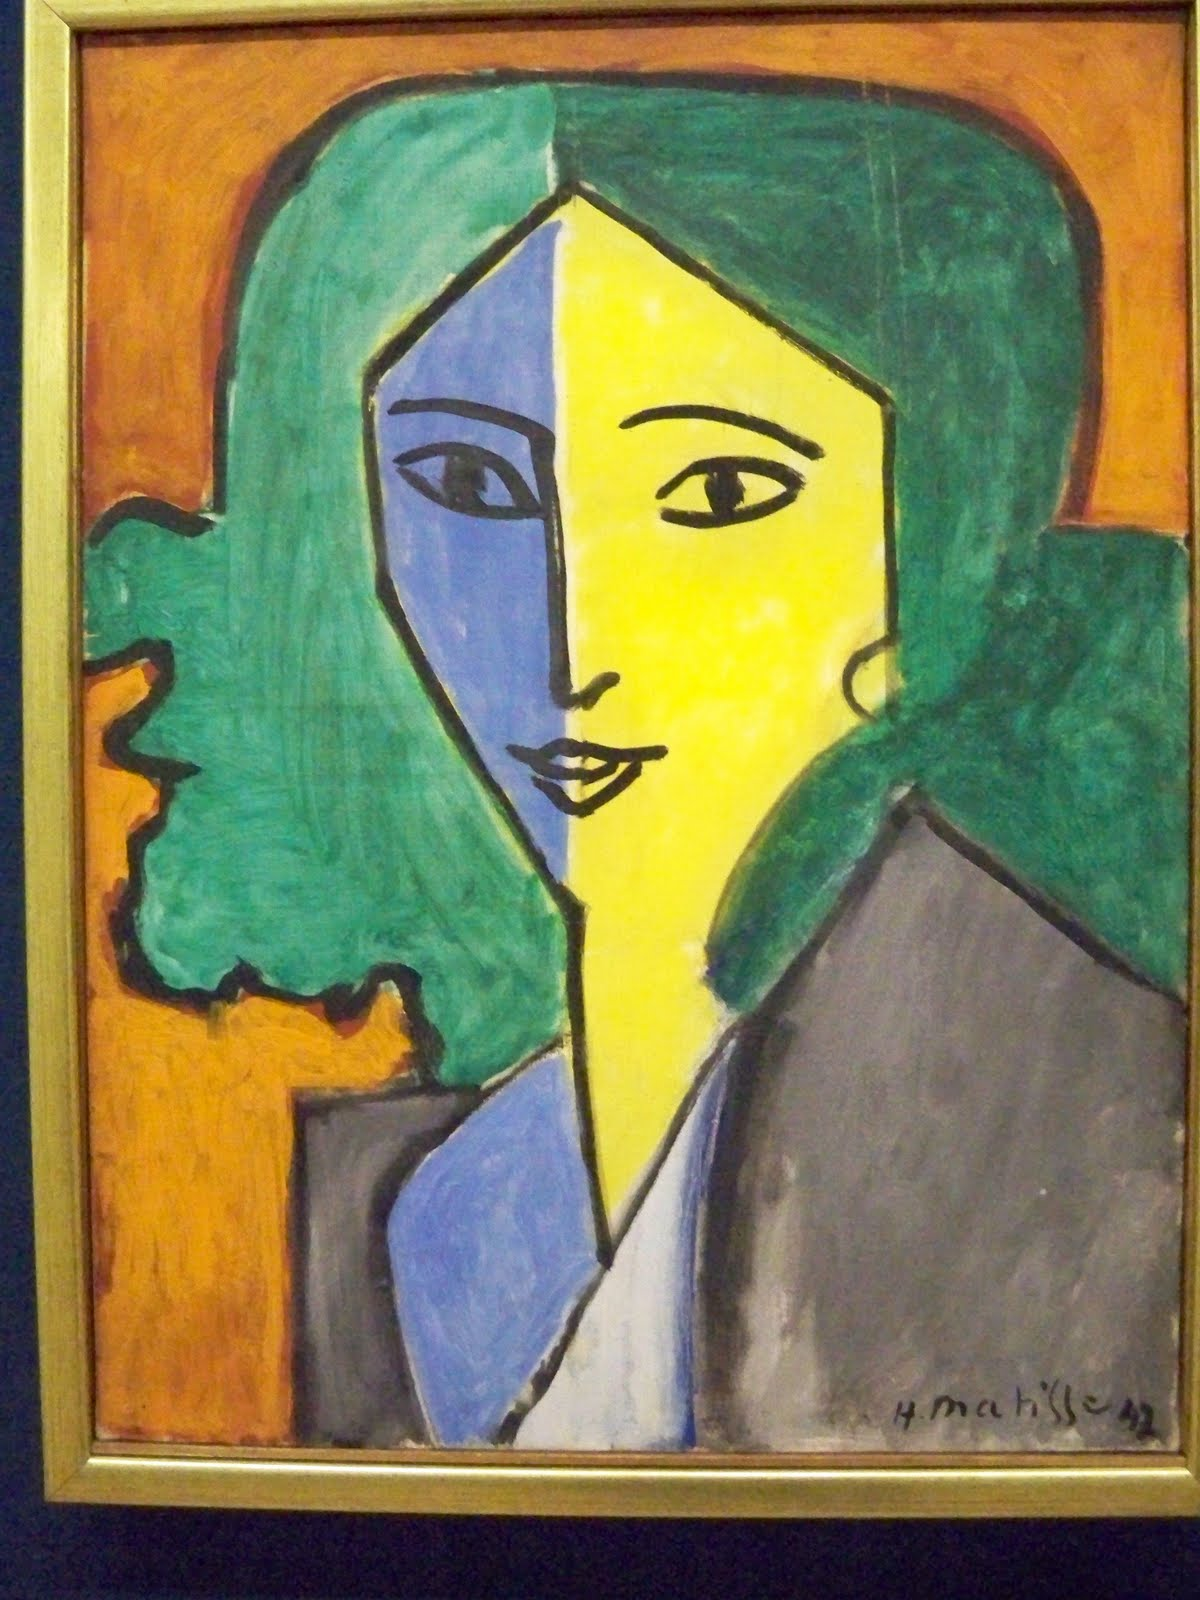 On the Way Home: Matisse